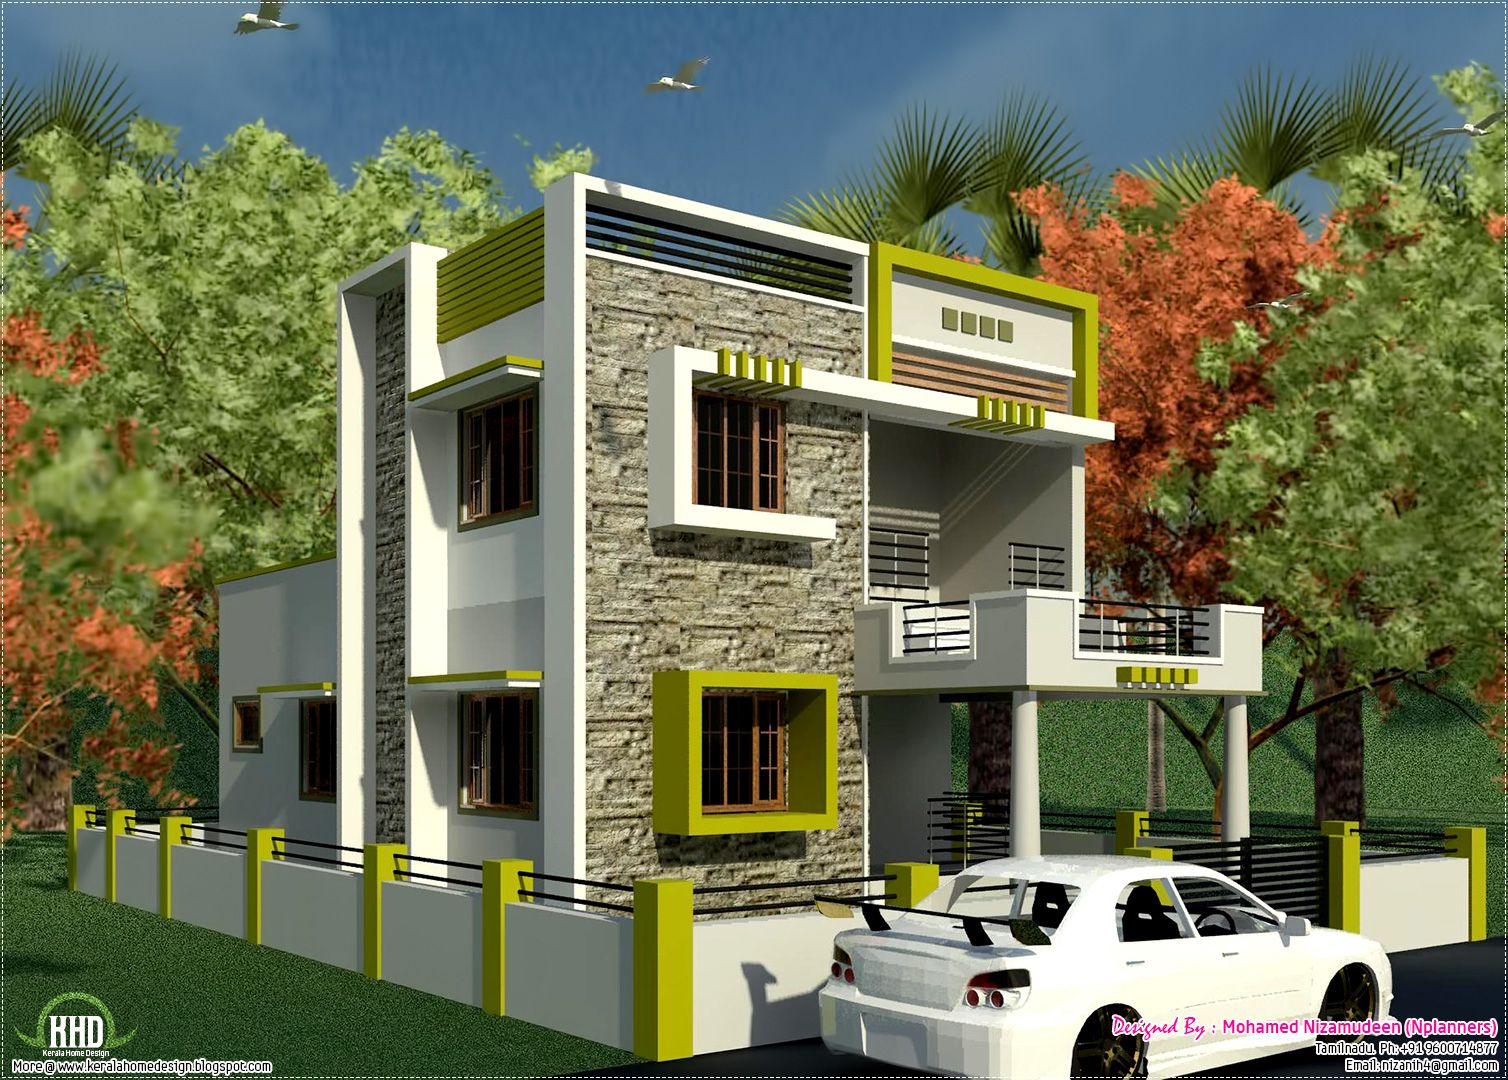 Small house with car park design tobfav com ideas for Indian house front design photo